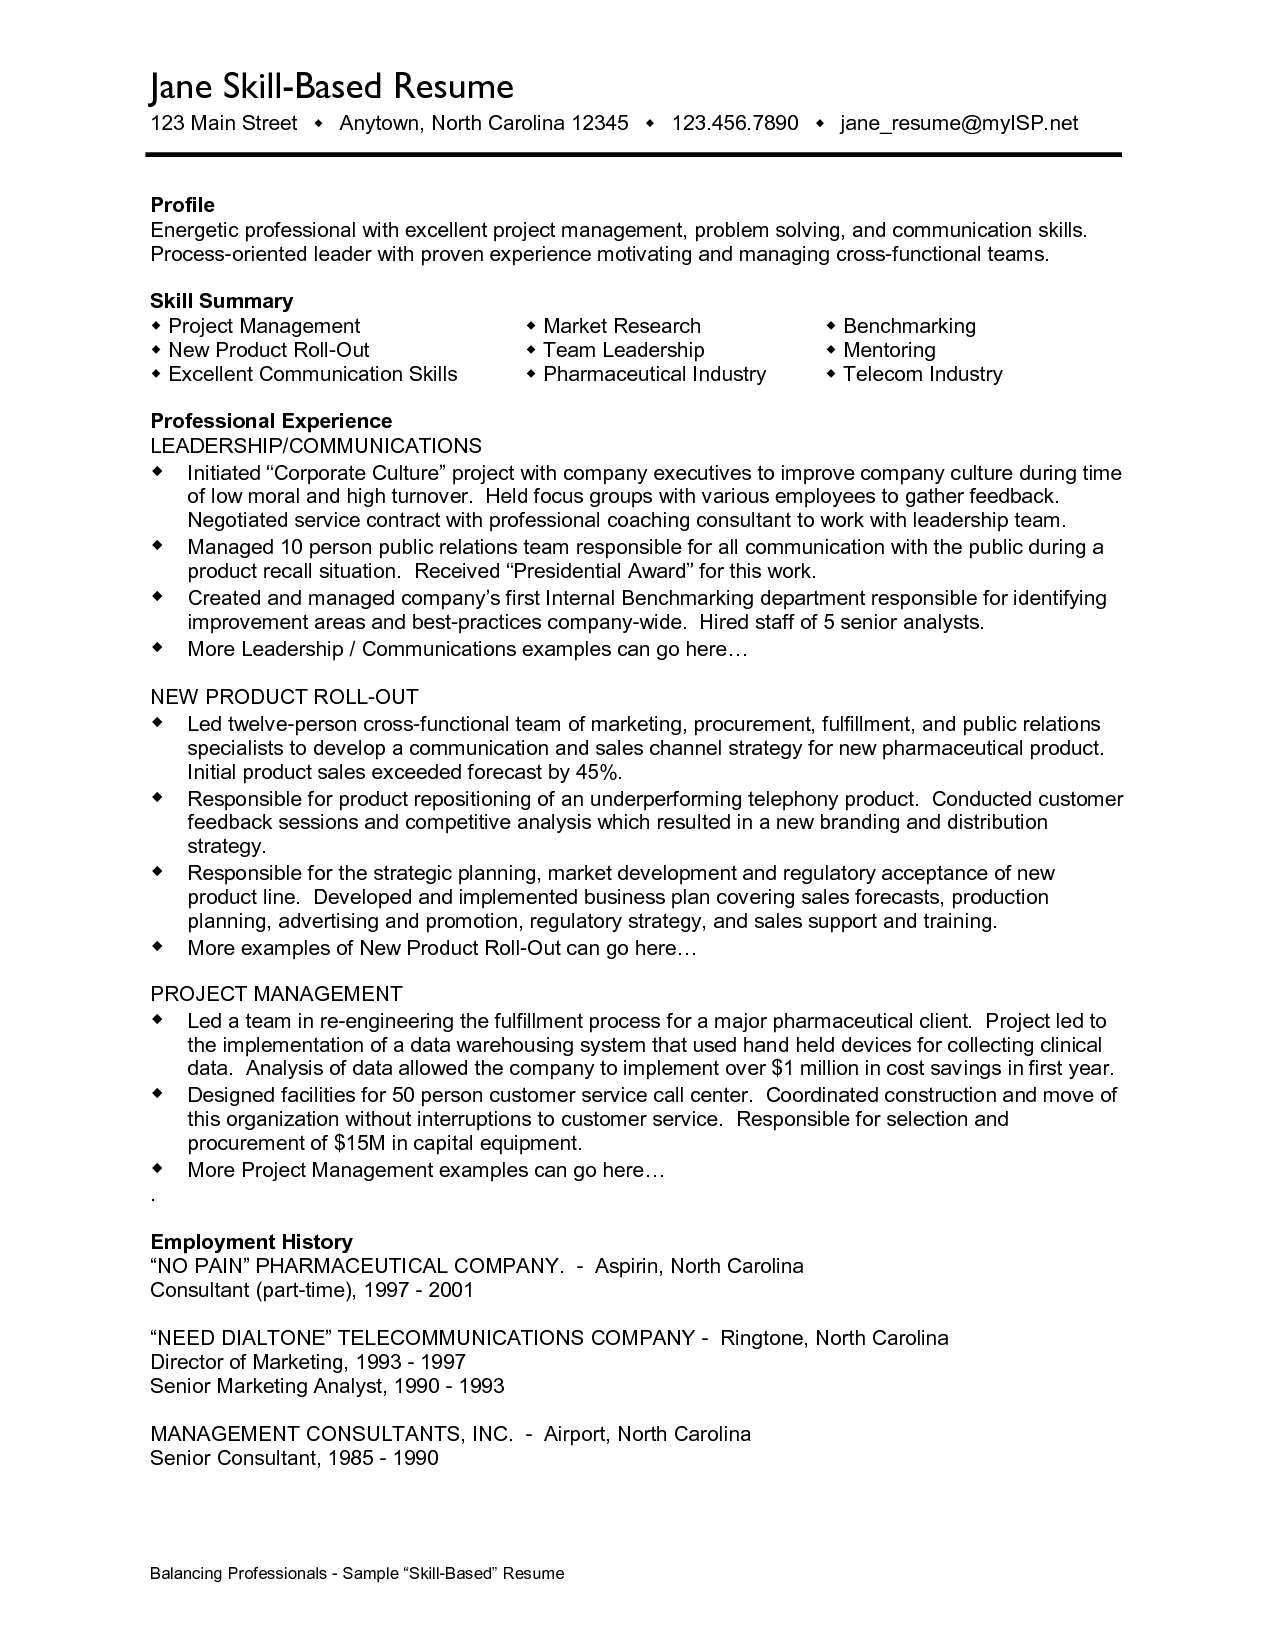 Professional Skills Sample Resume Resume Skills Section Resume Skills Resume Objective Examples